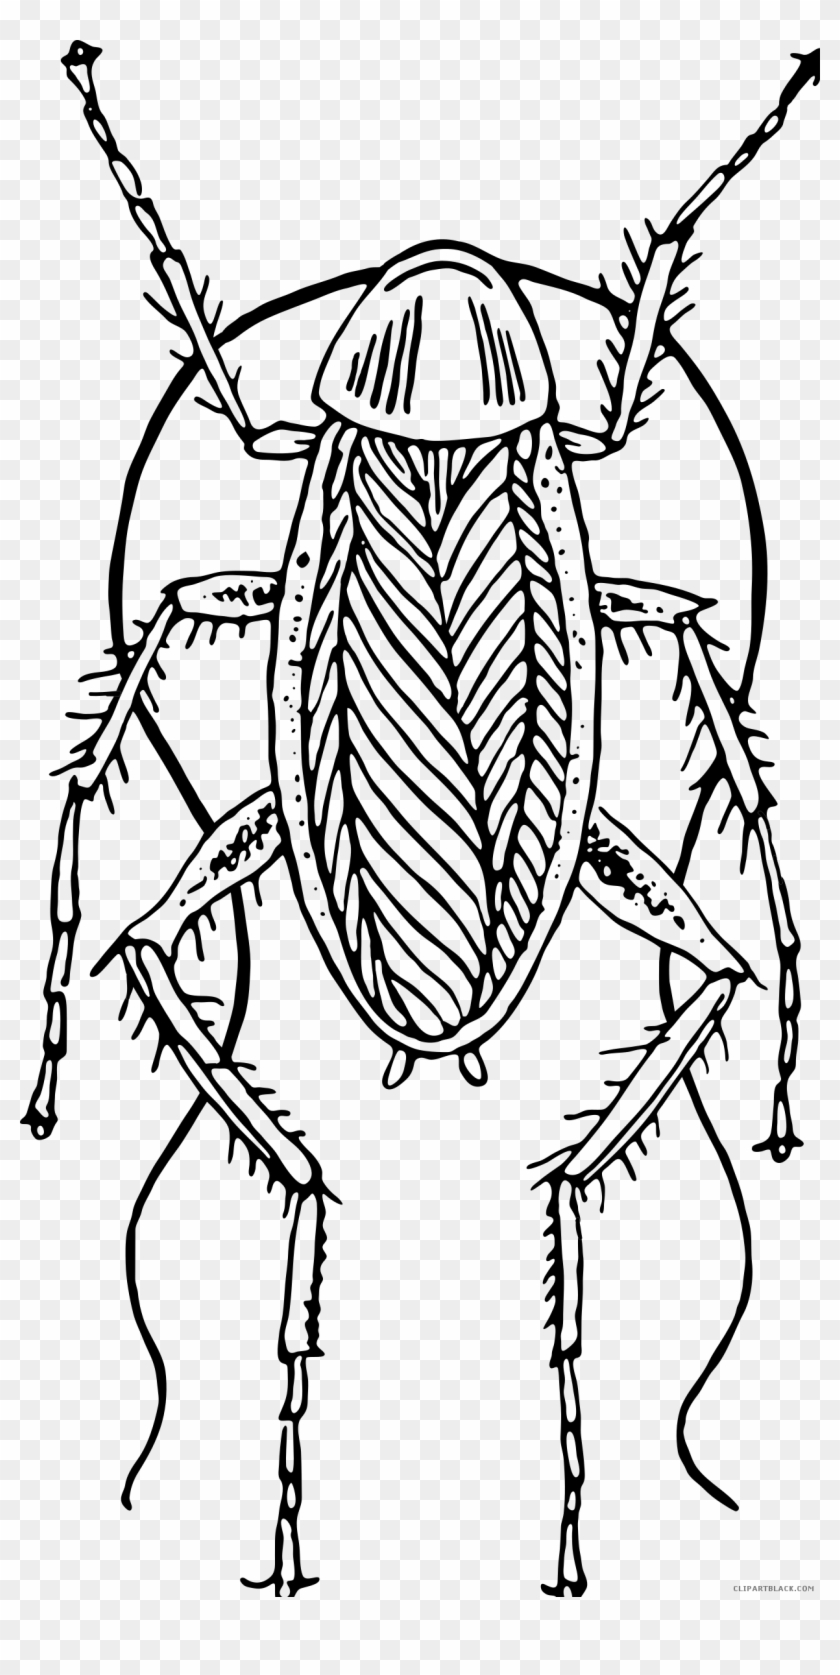 Cockroach Black And White - Cockroach Clipart Black And White - Png Download